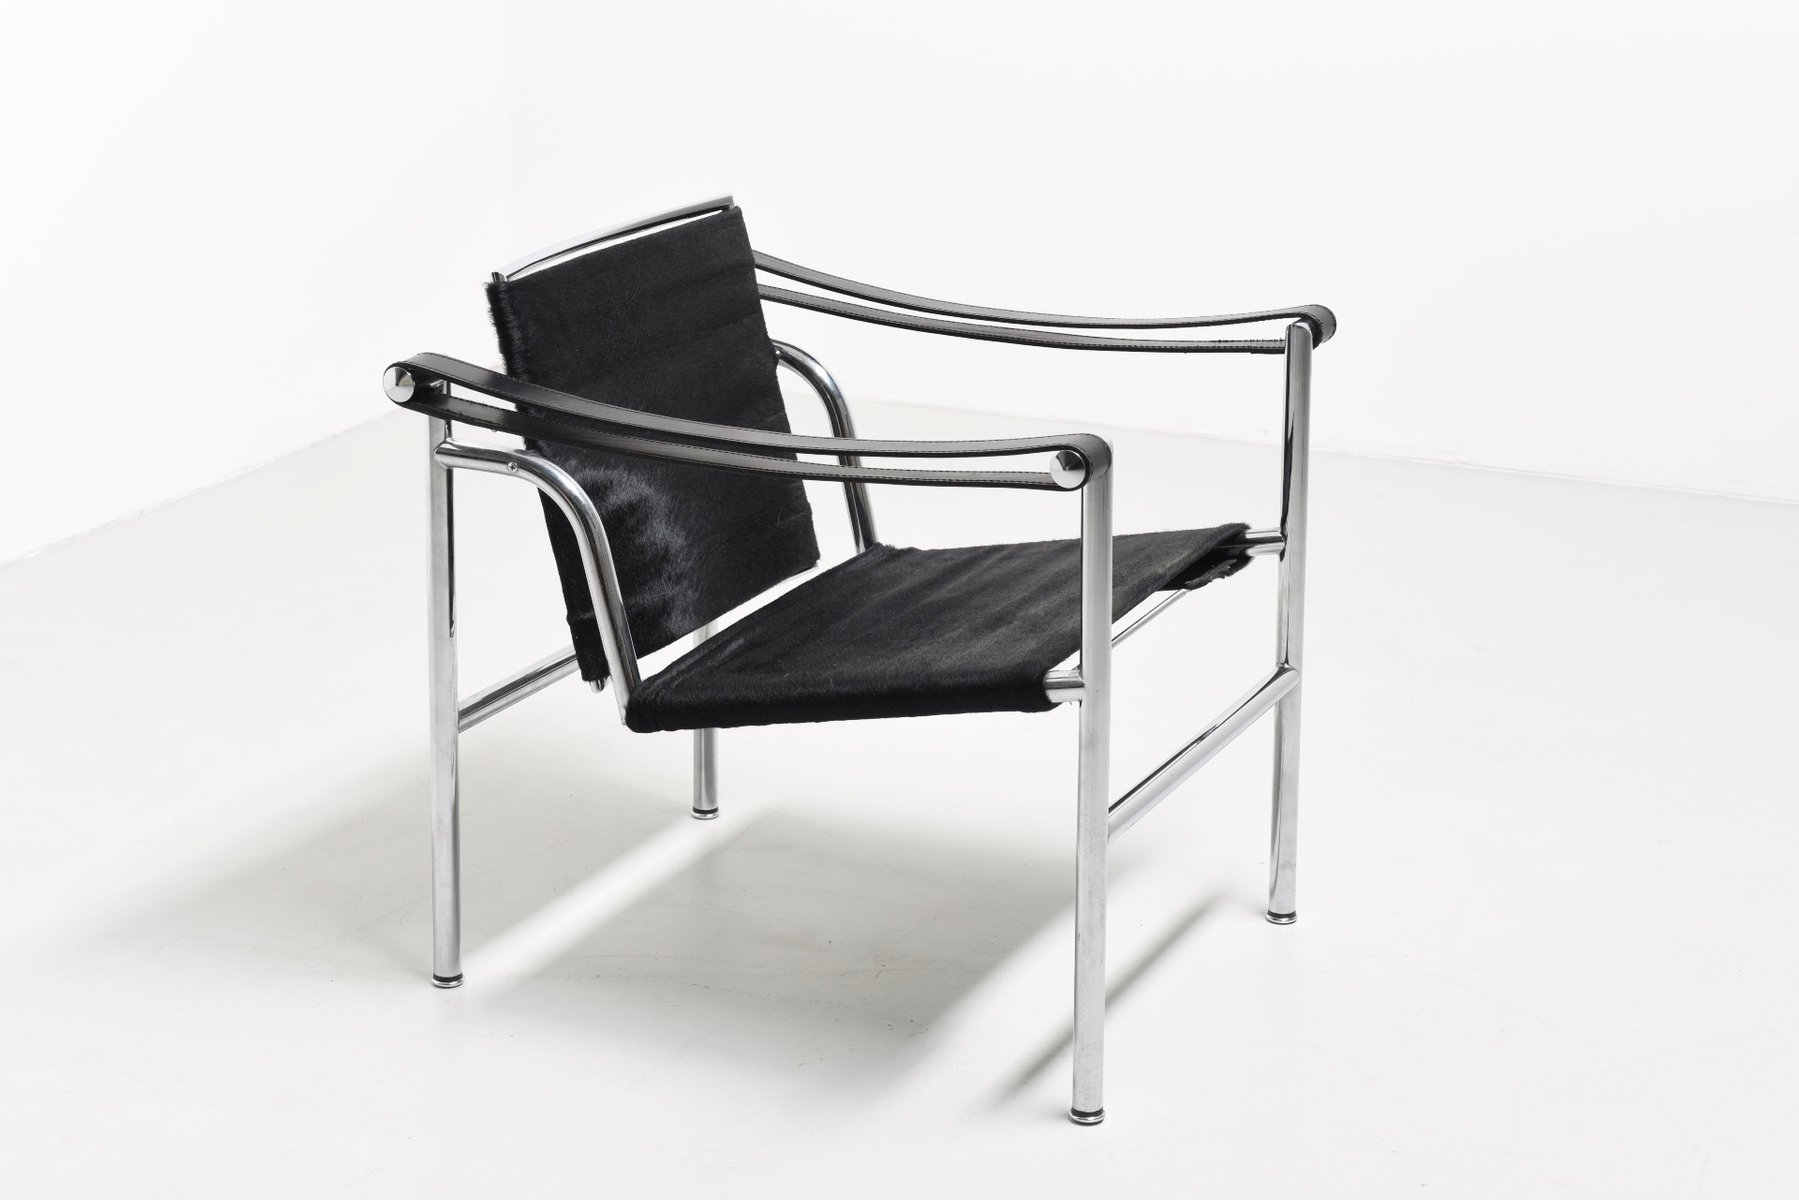 fauteuil lc1 vintage par le corbusier pierre jeanneret charlotte perriand pour cassina en. Black Bedroom Furniture Sets. Home Design Ideas